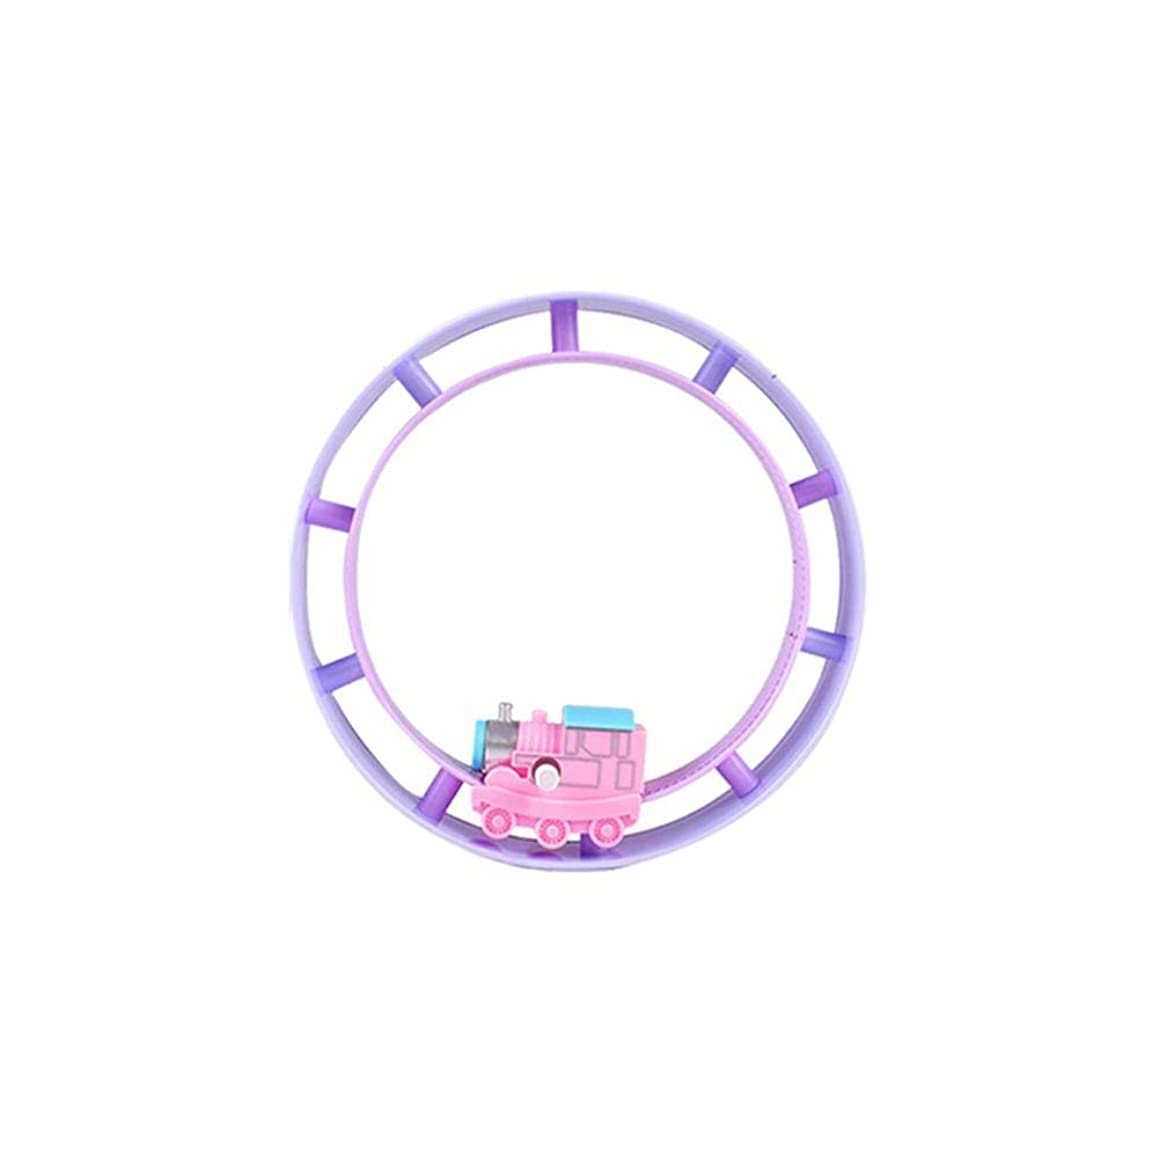 Clockwork Track Toy Round Track Rolling Car Winding Track Train Turn The knob and The Train Will Move Forward Car Funny Toy